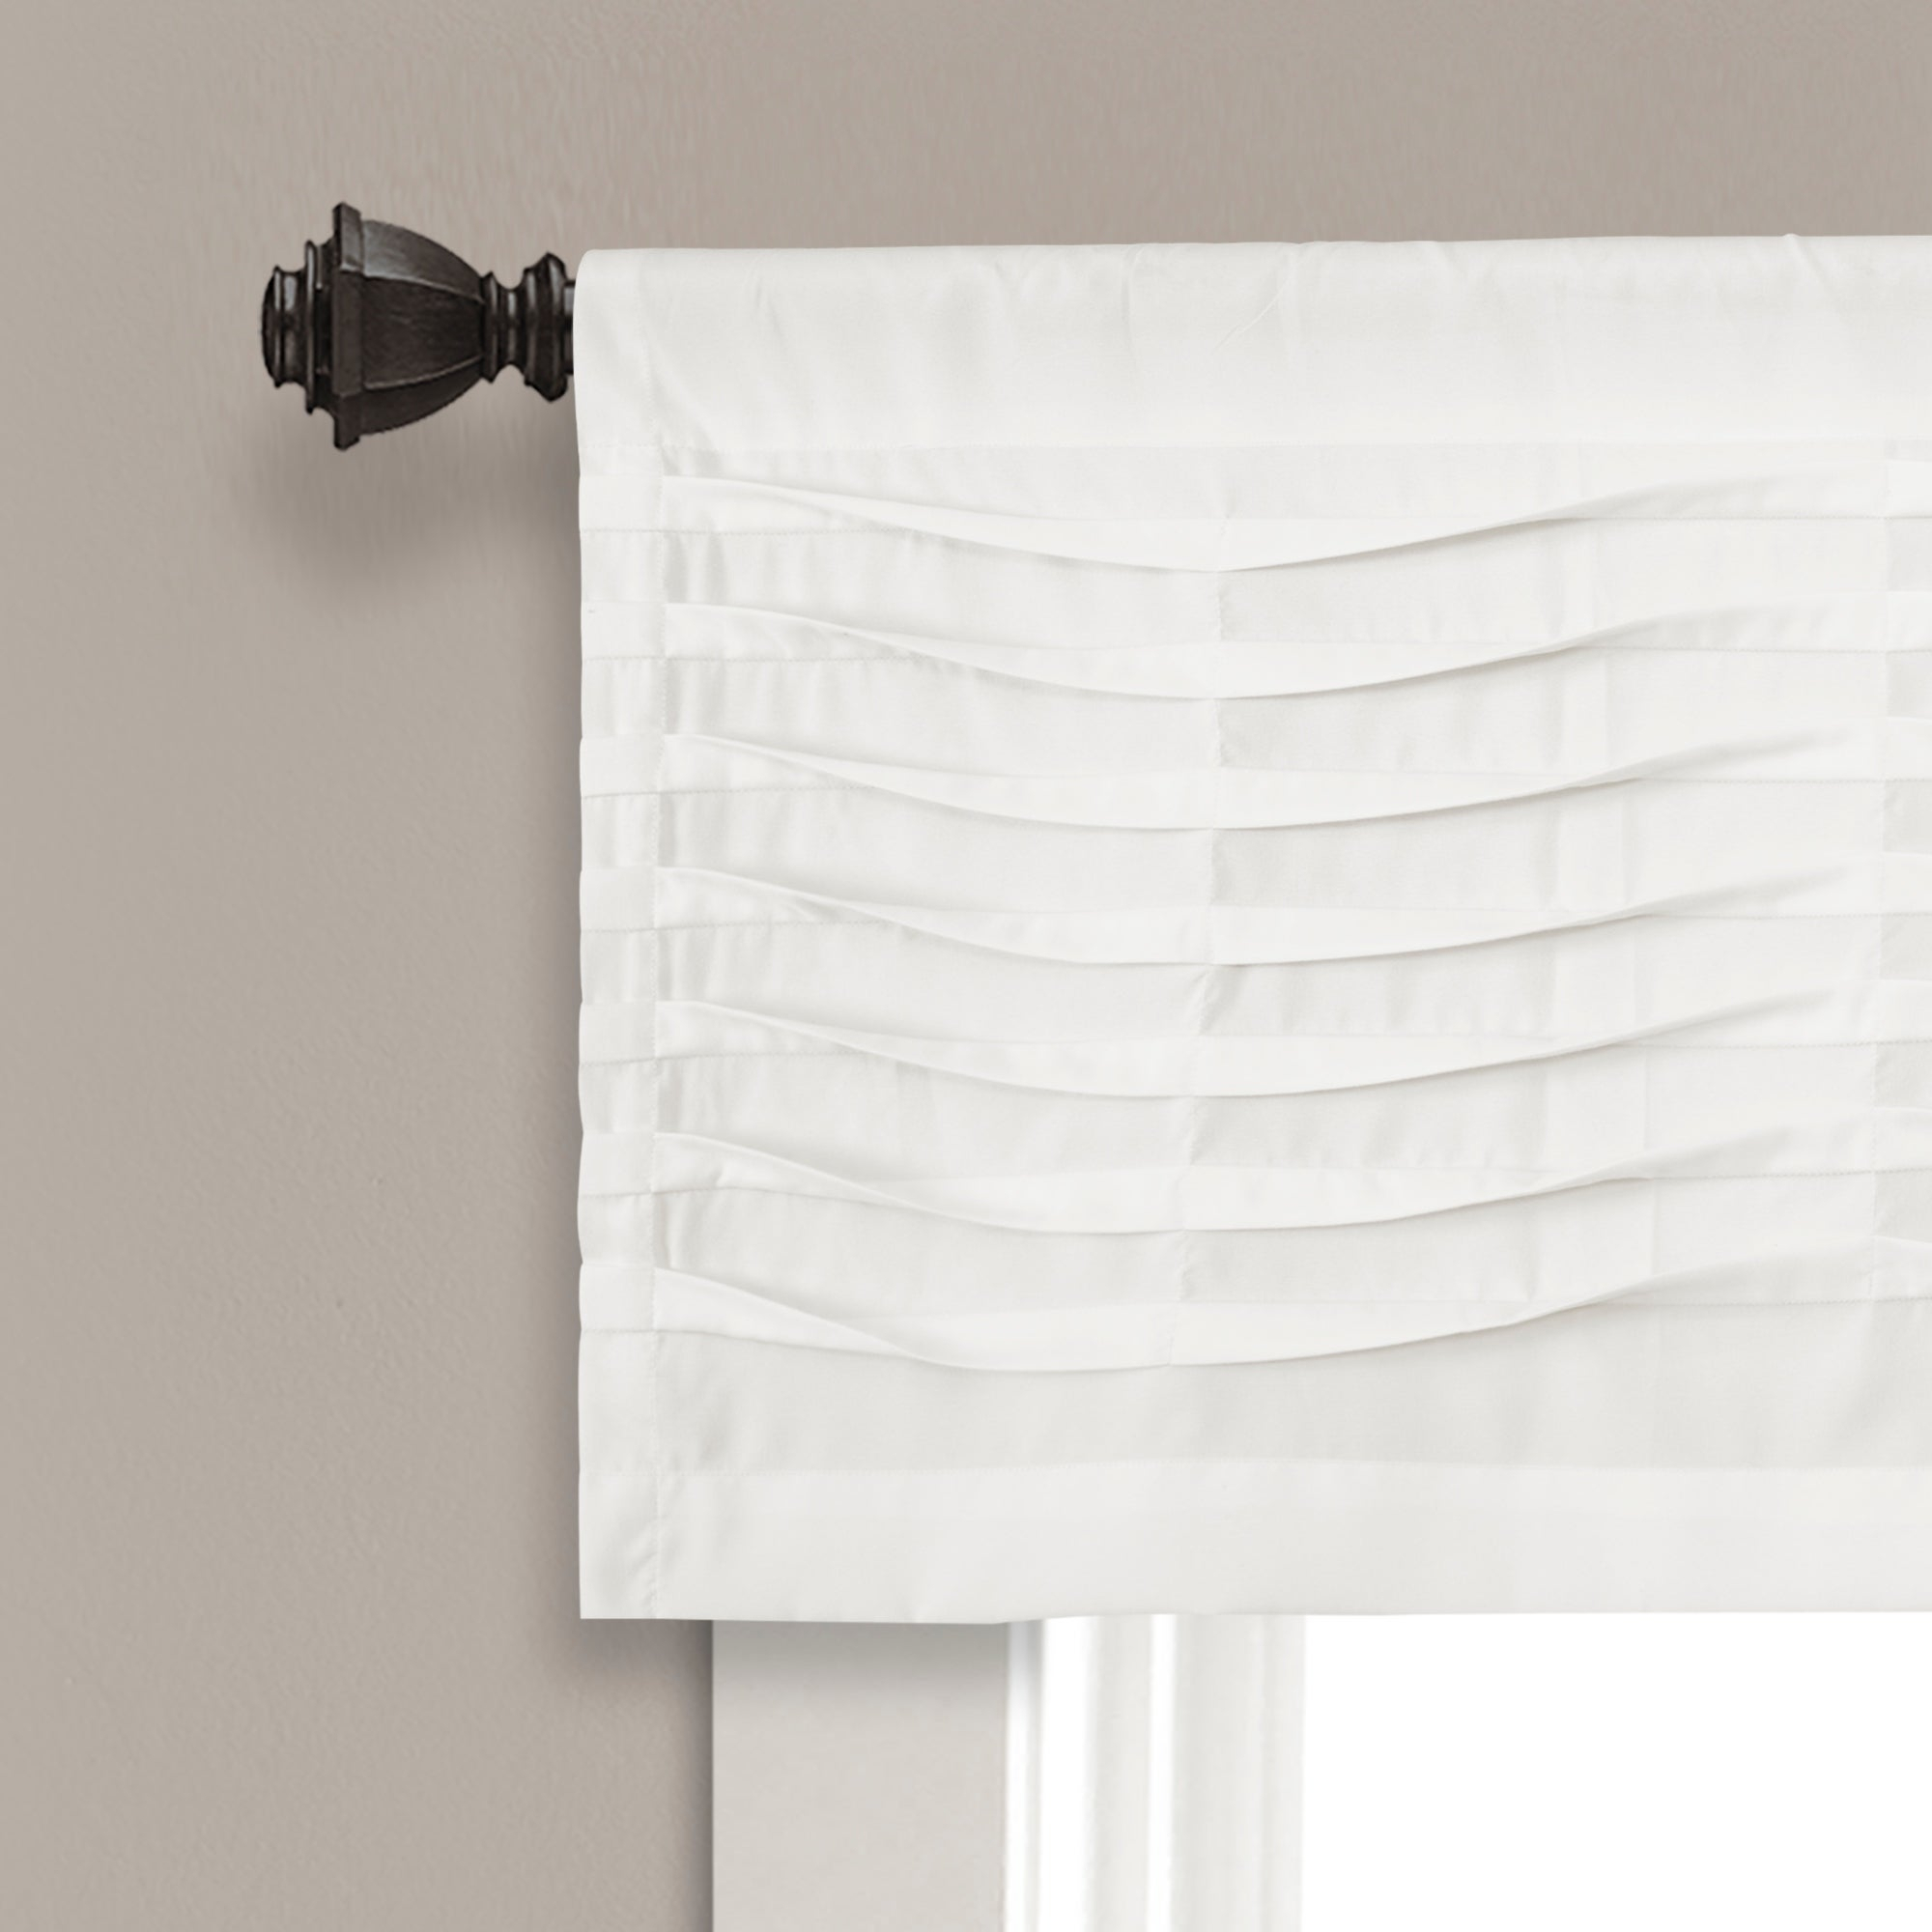 Details About Porch & Den Kinnaman Wave Texture Window Curtain Valance inside Porch & Den Lorentz Silver 24-Inch Tier Pairs (Image 2 of 20)